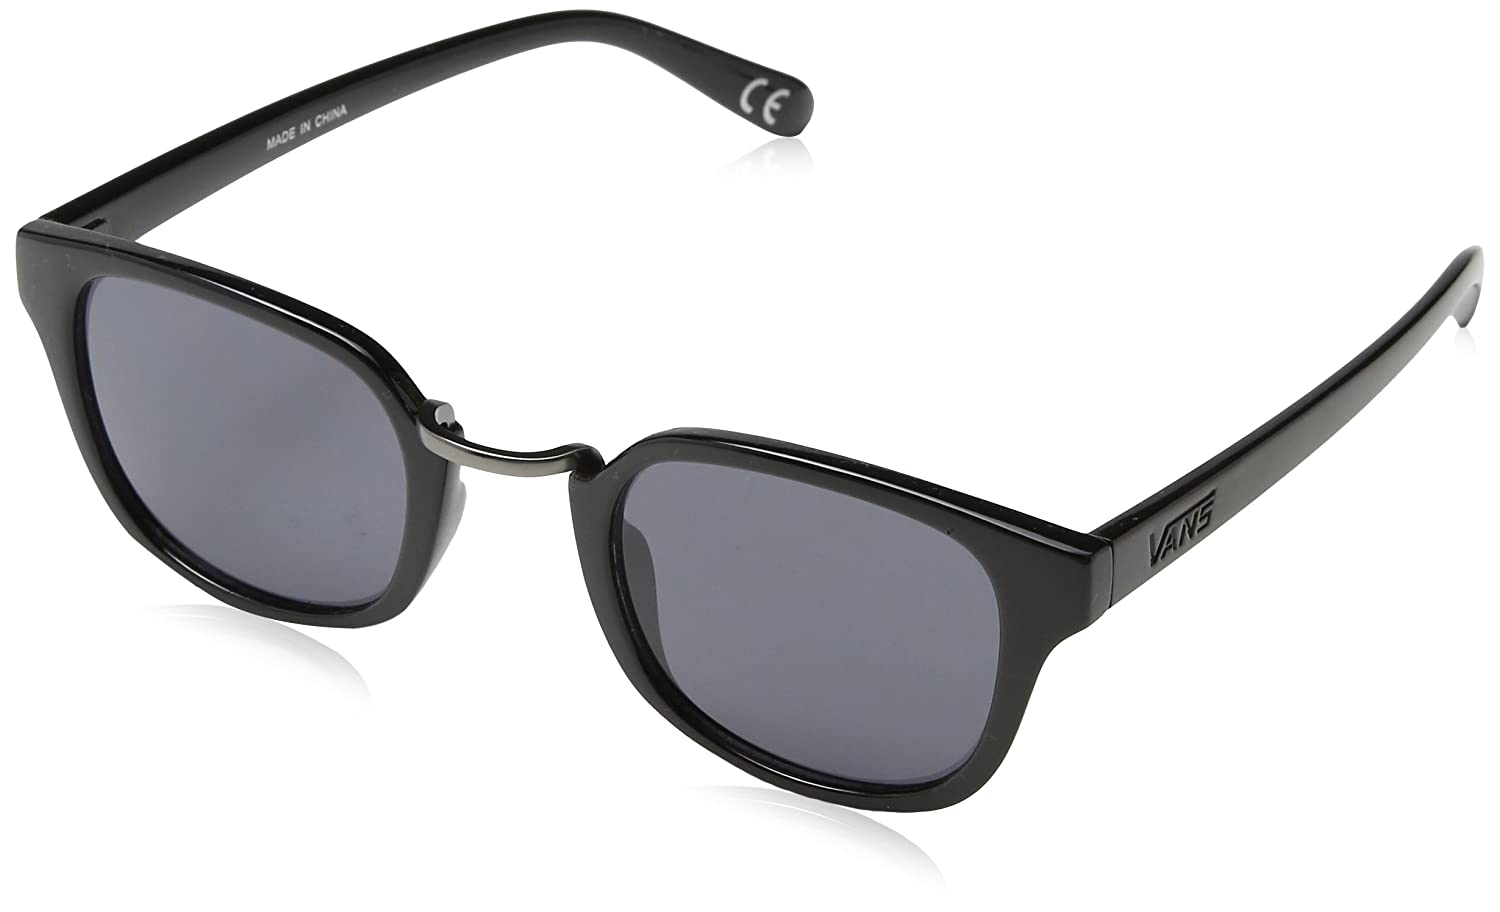 Vans_Apparel Carvey Shades, Gafas de Sol Unisex Adulto, Negro (Black), 55